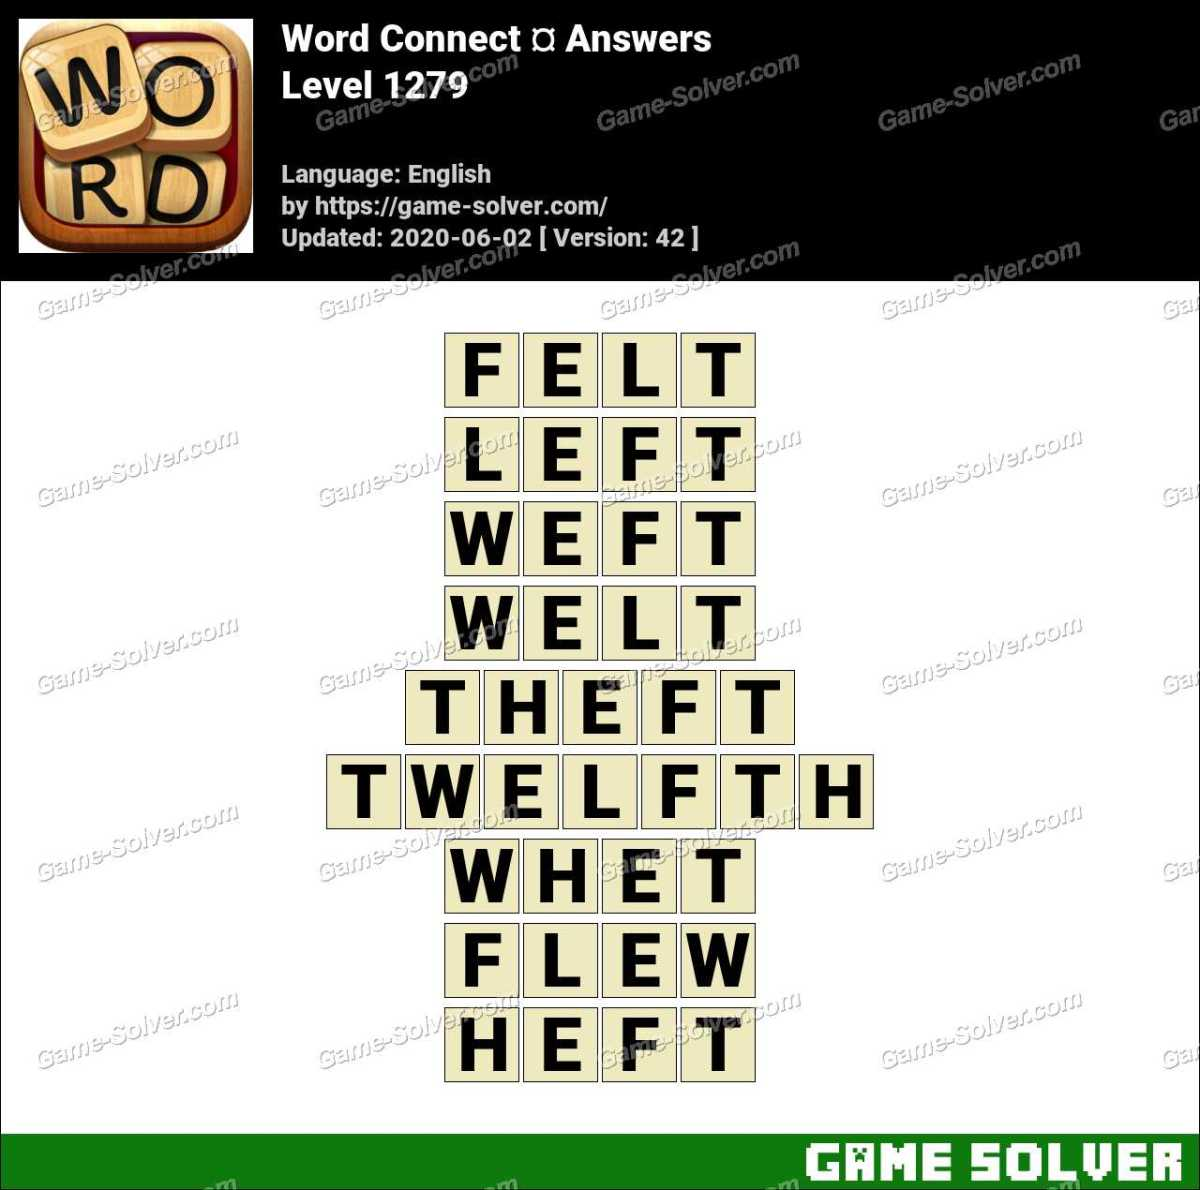 Word Connect Level 1279 Answers